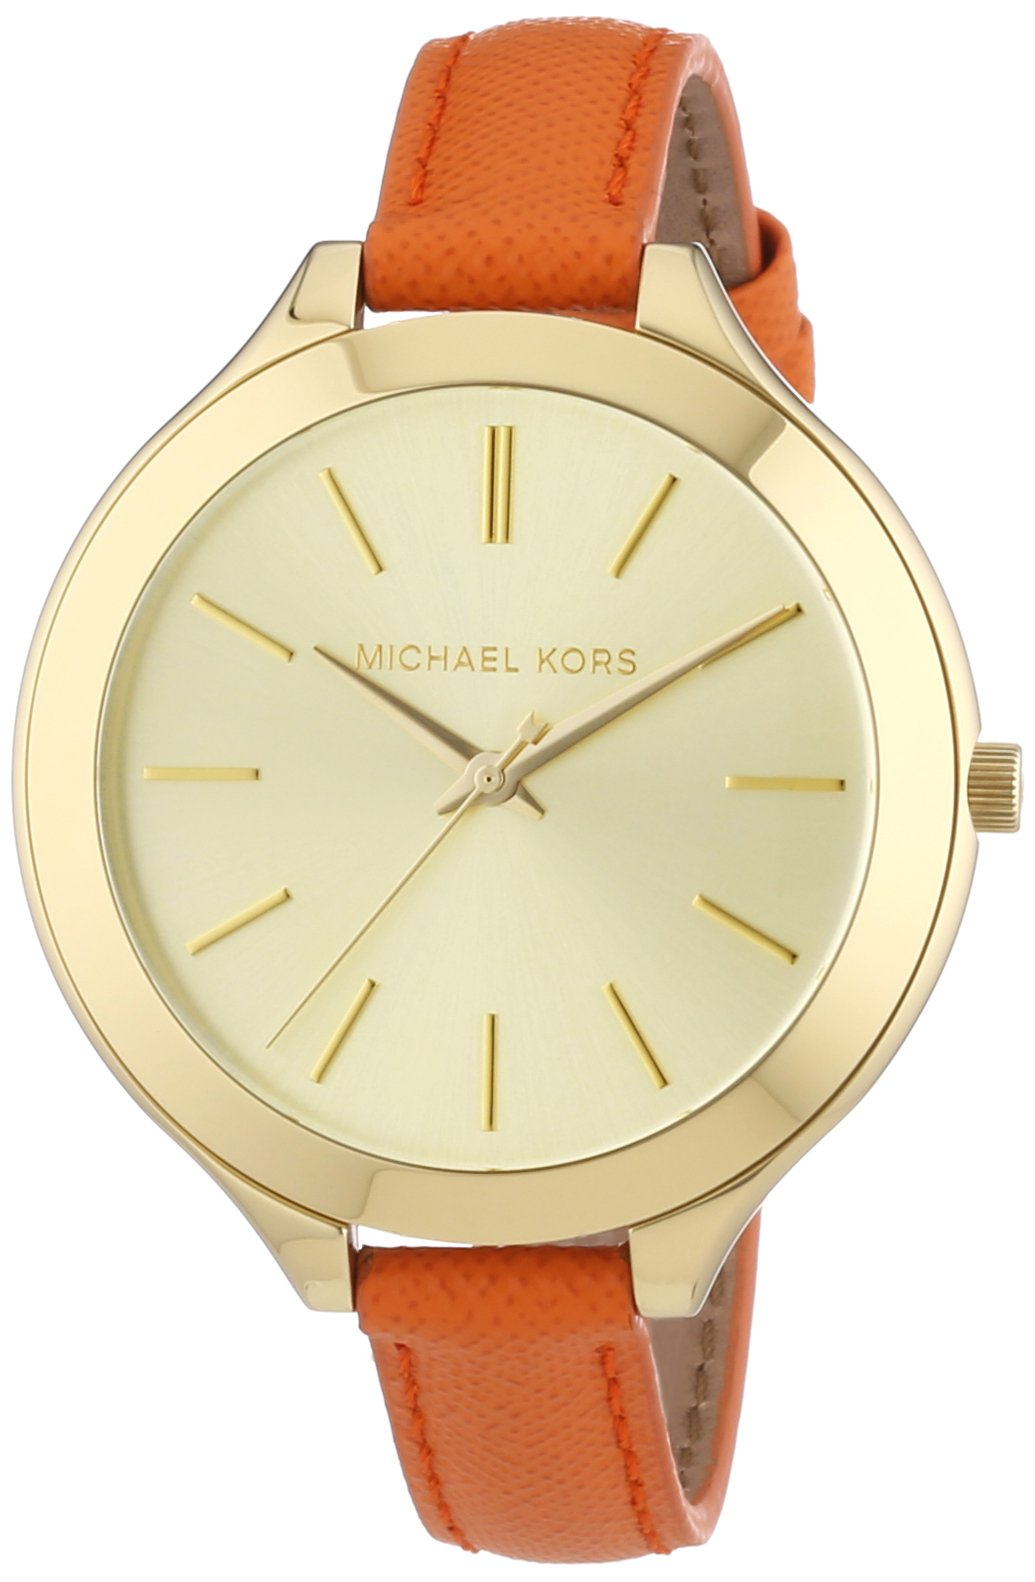 Michael Kors MK2275 Women's Watch by Michael Kors